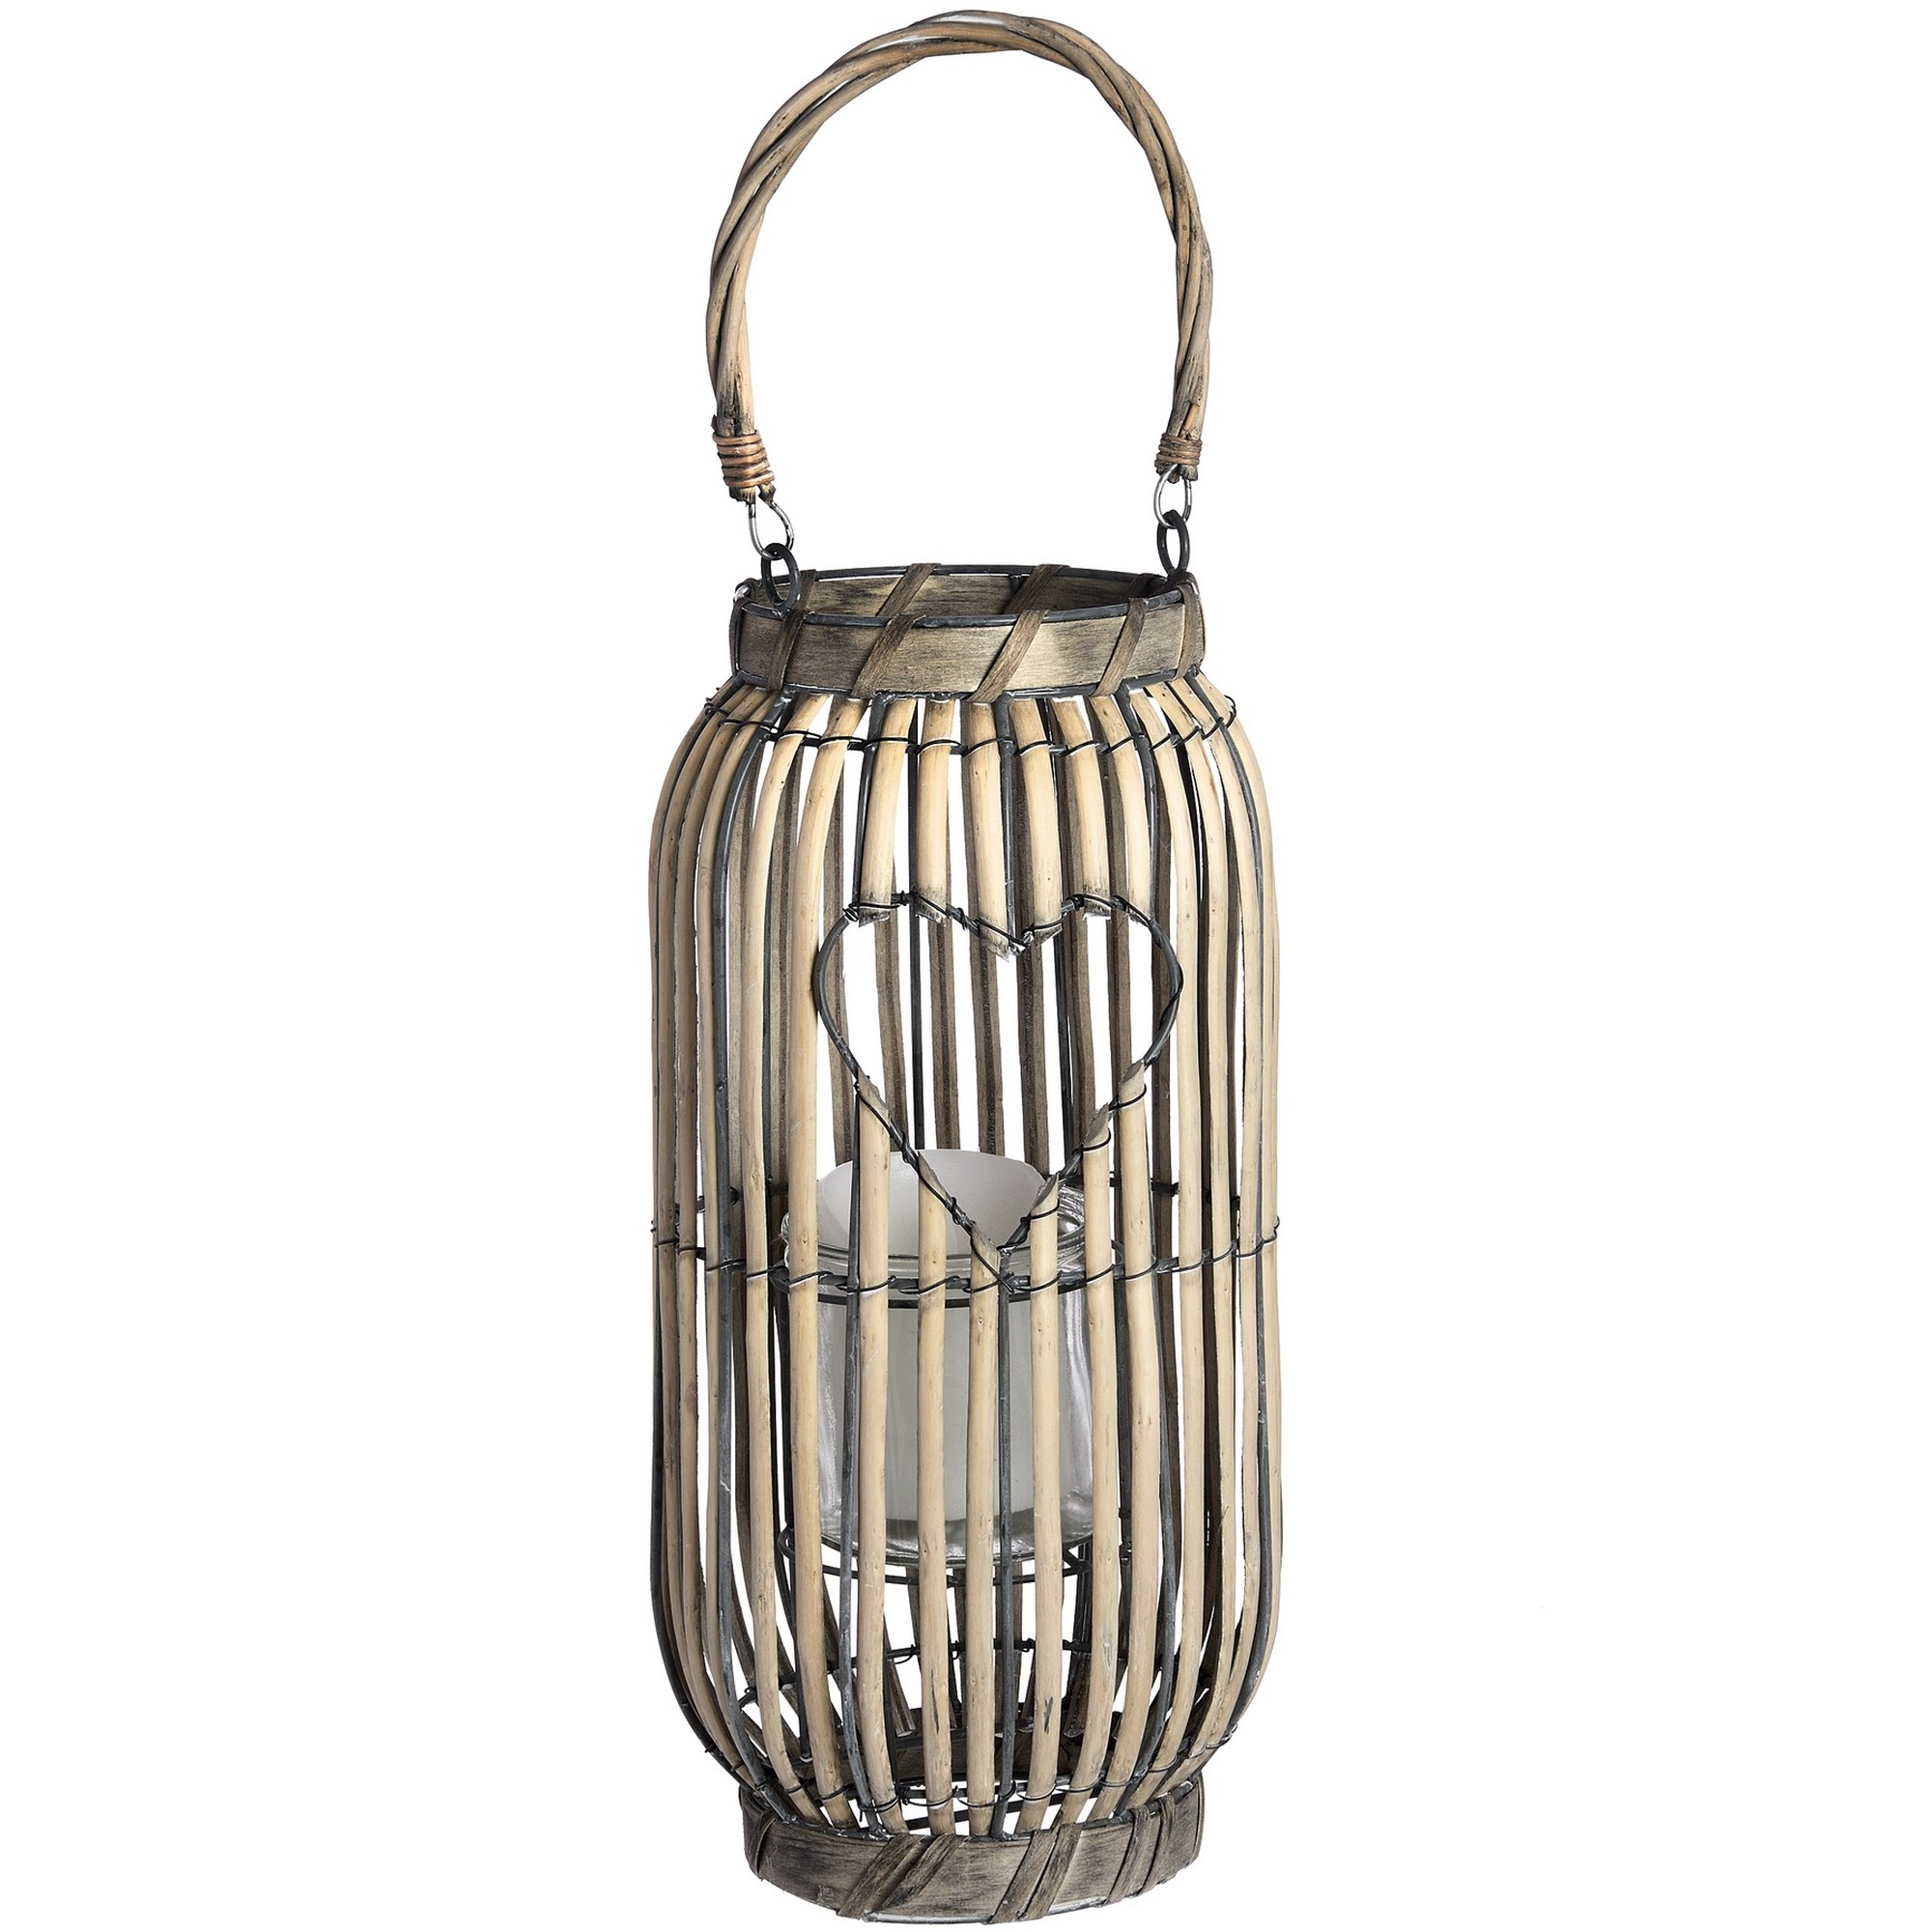 Hill-Interiors-Standing-Lantern-with-Heart-Detailing-HI2684